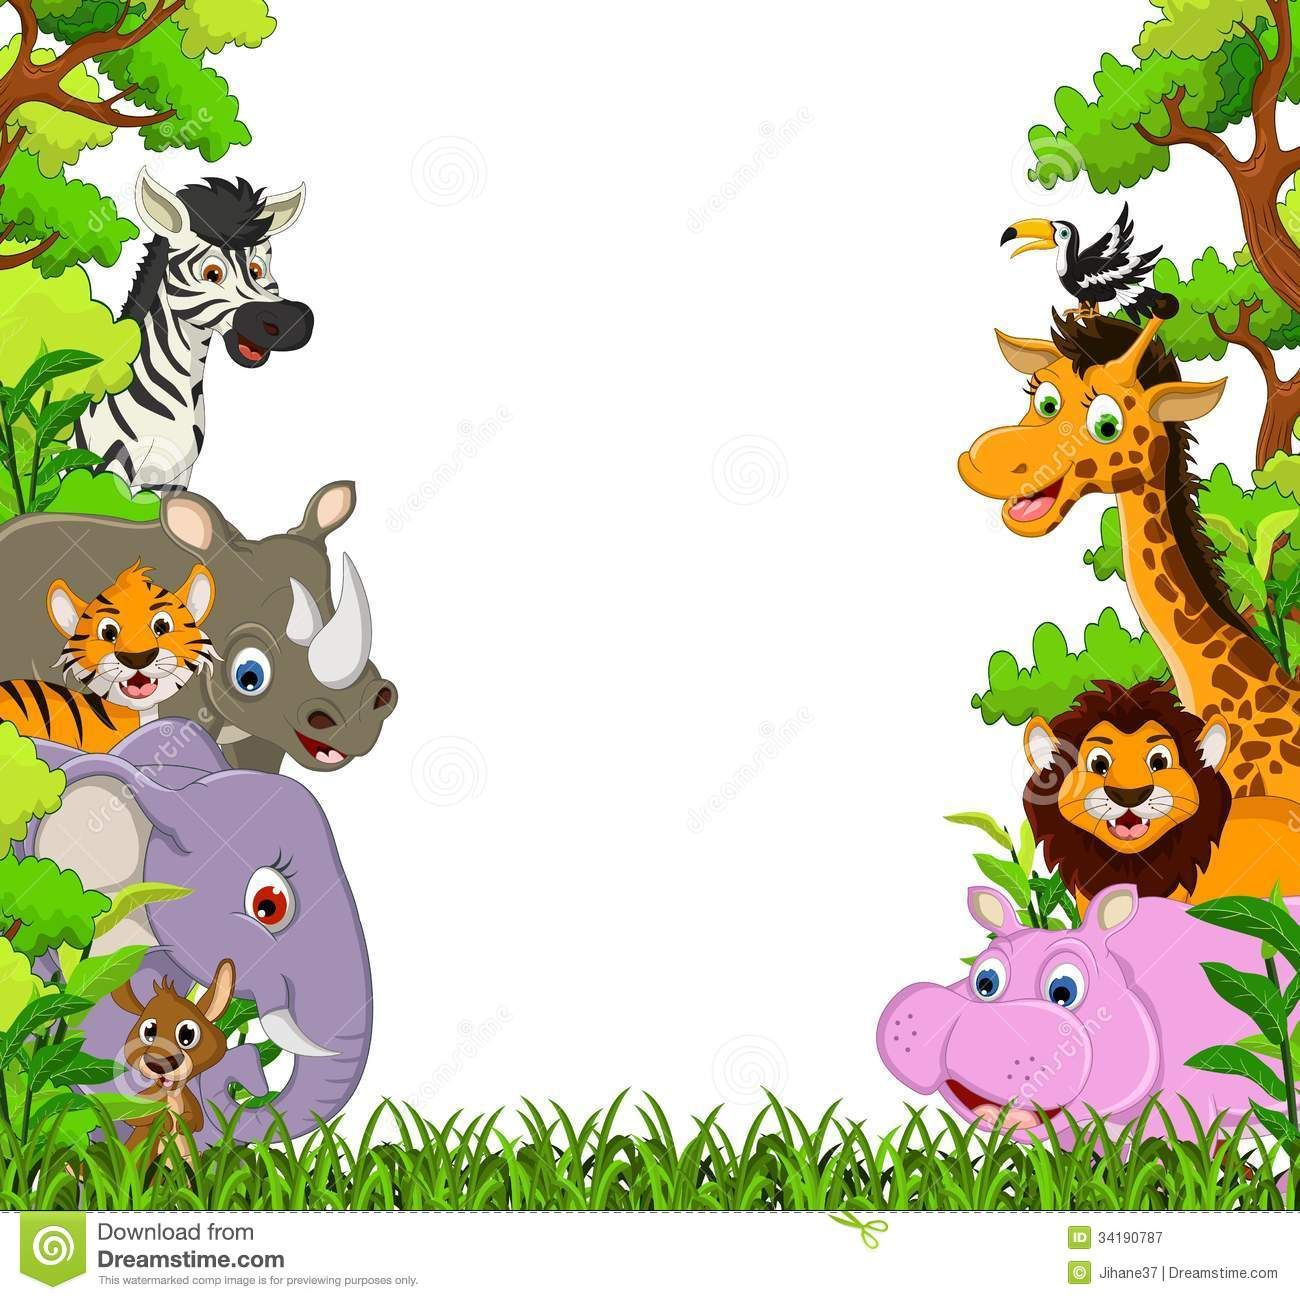 image for free jungle animal clipart cartoon images cute animal rh pinterest com free jungle clipart images free clipart jungle trees